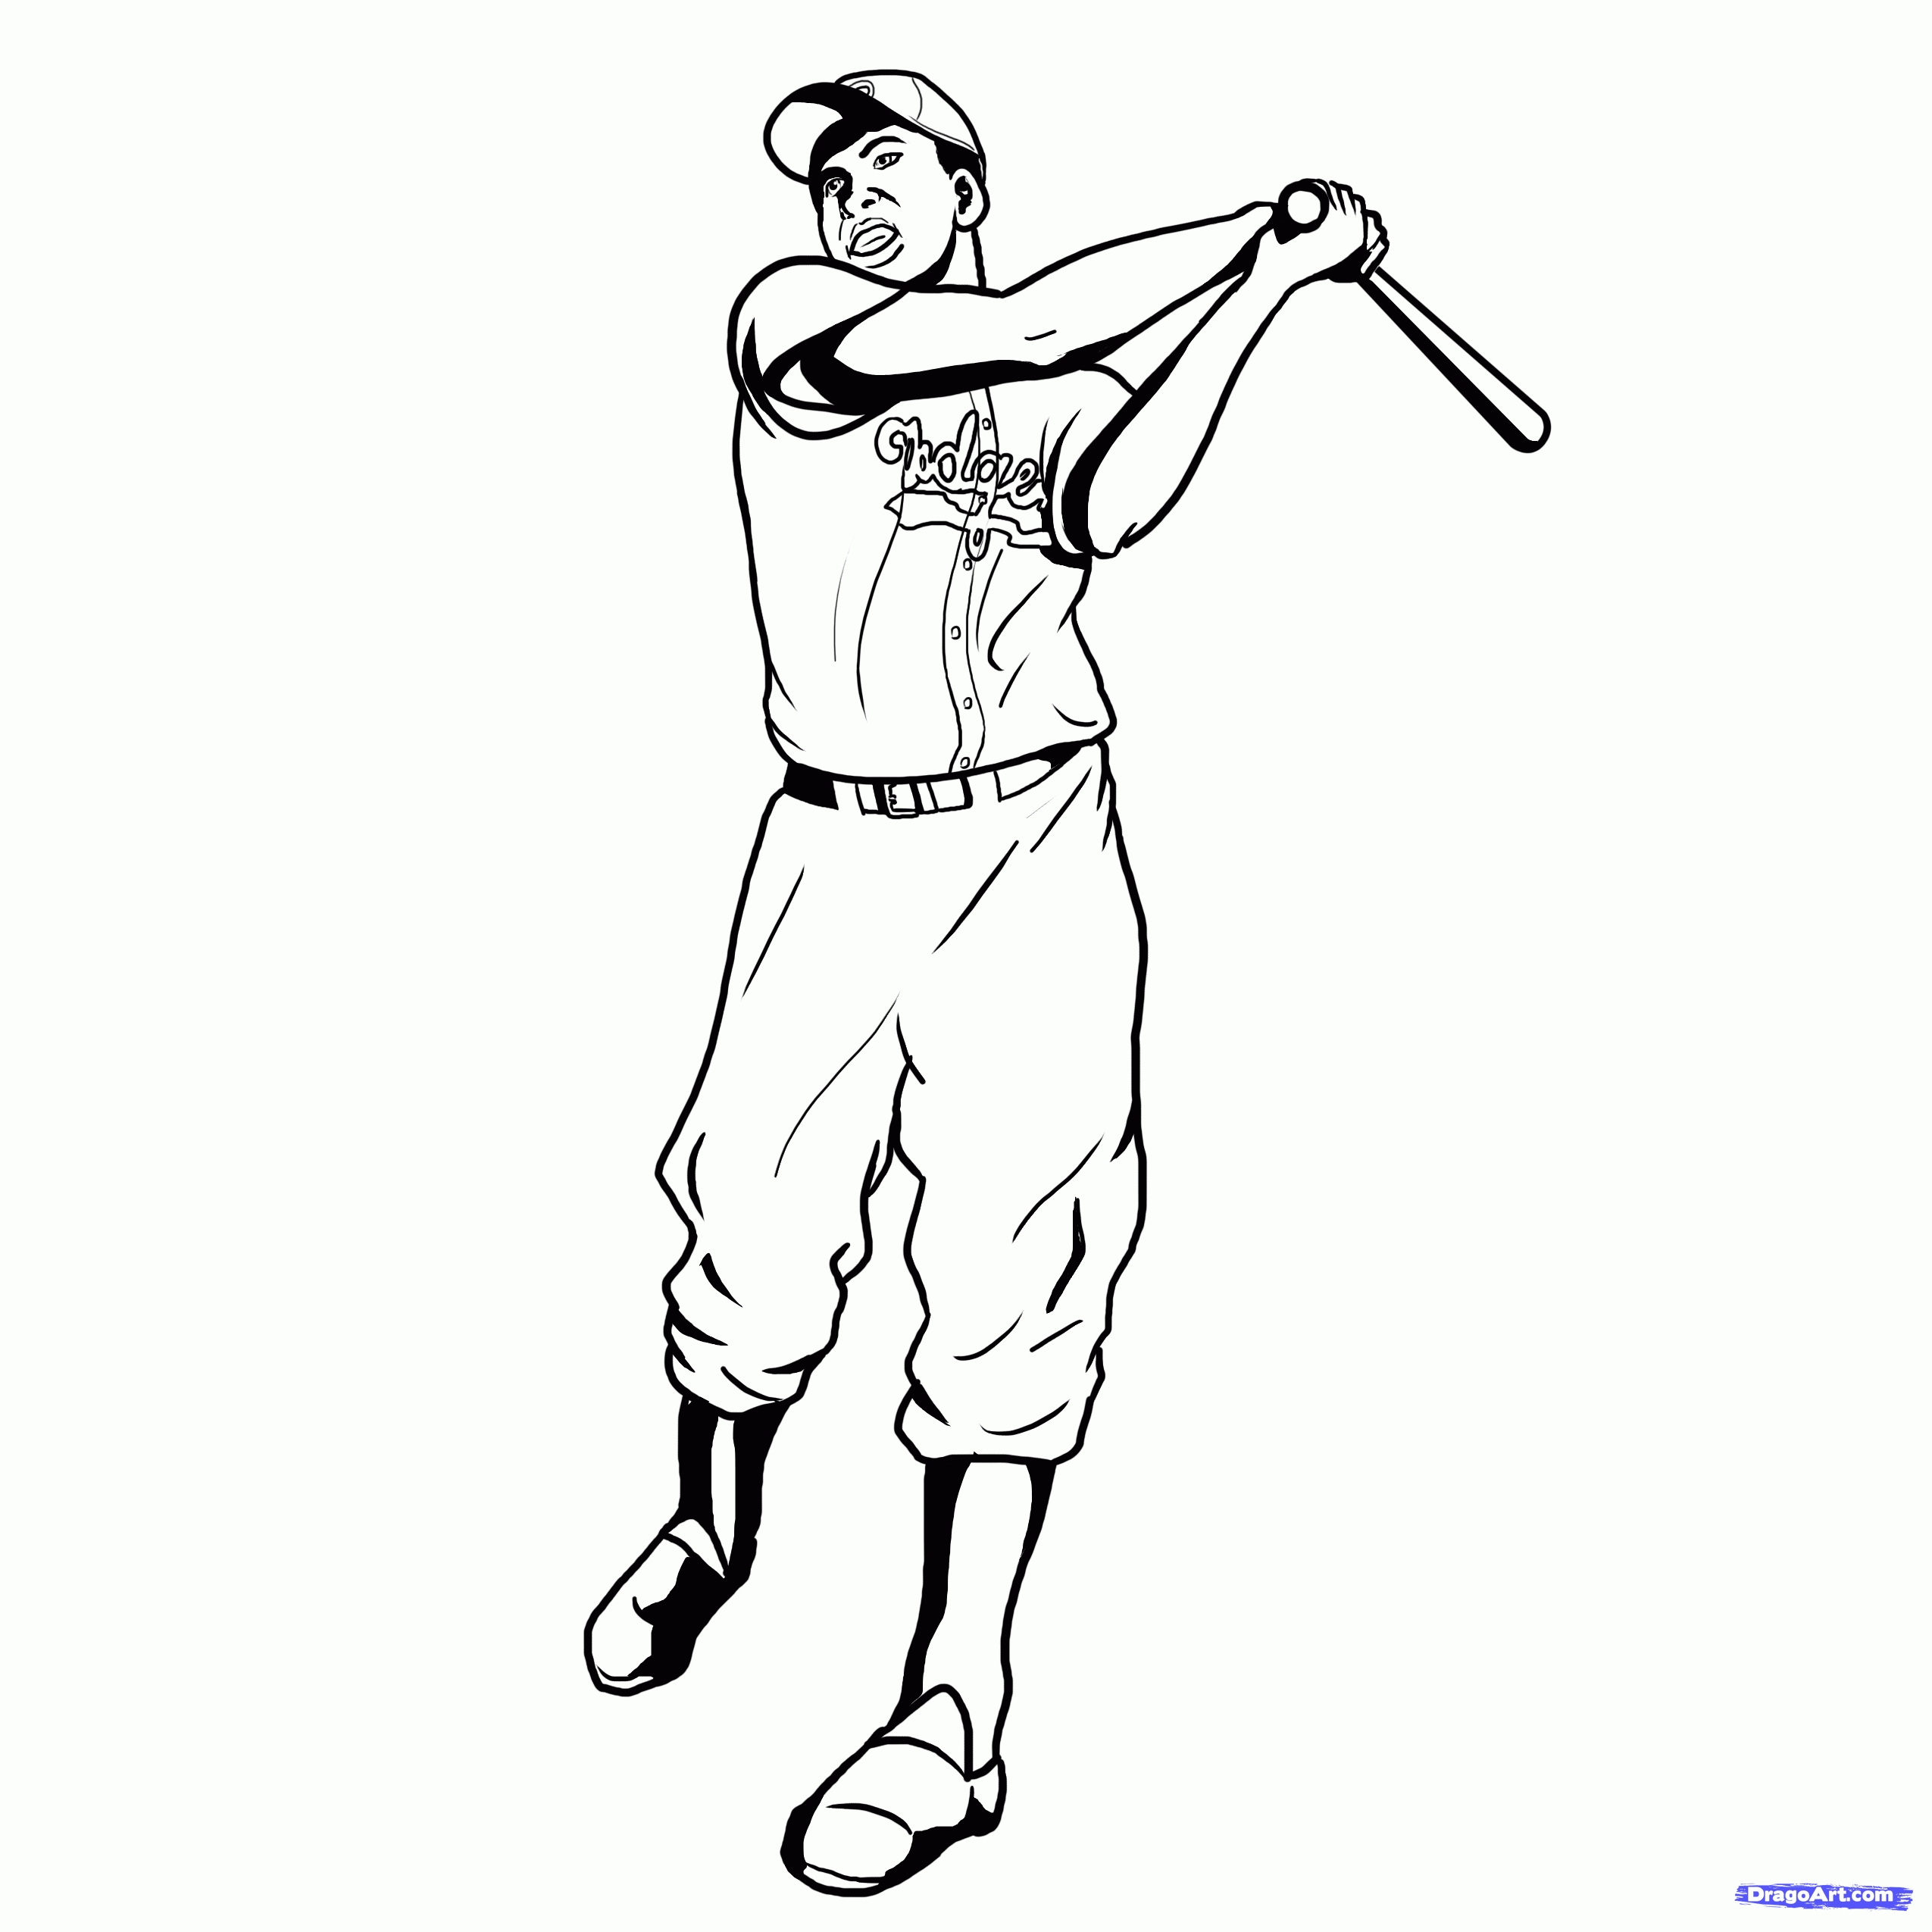 jackie robinson coloring page - jackie robinson coloring page sketch templates